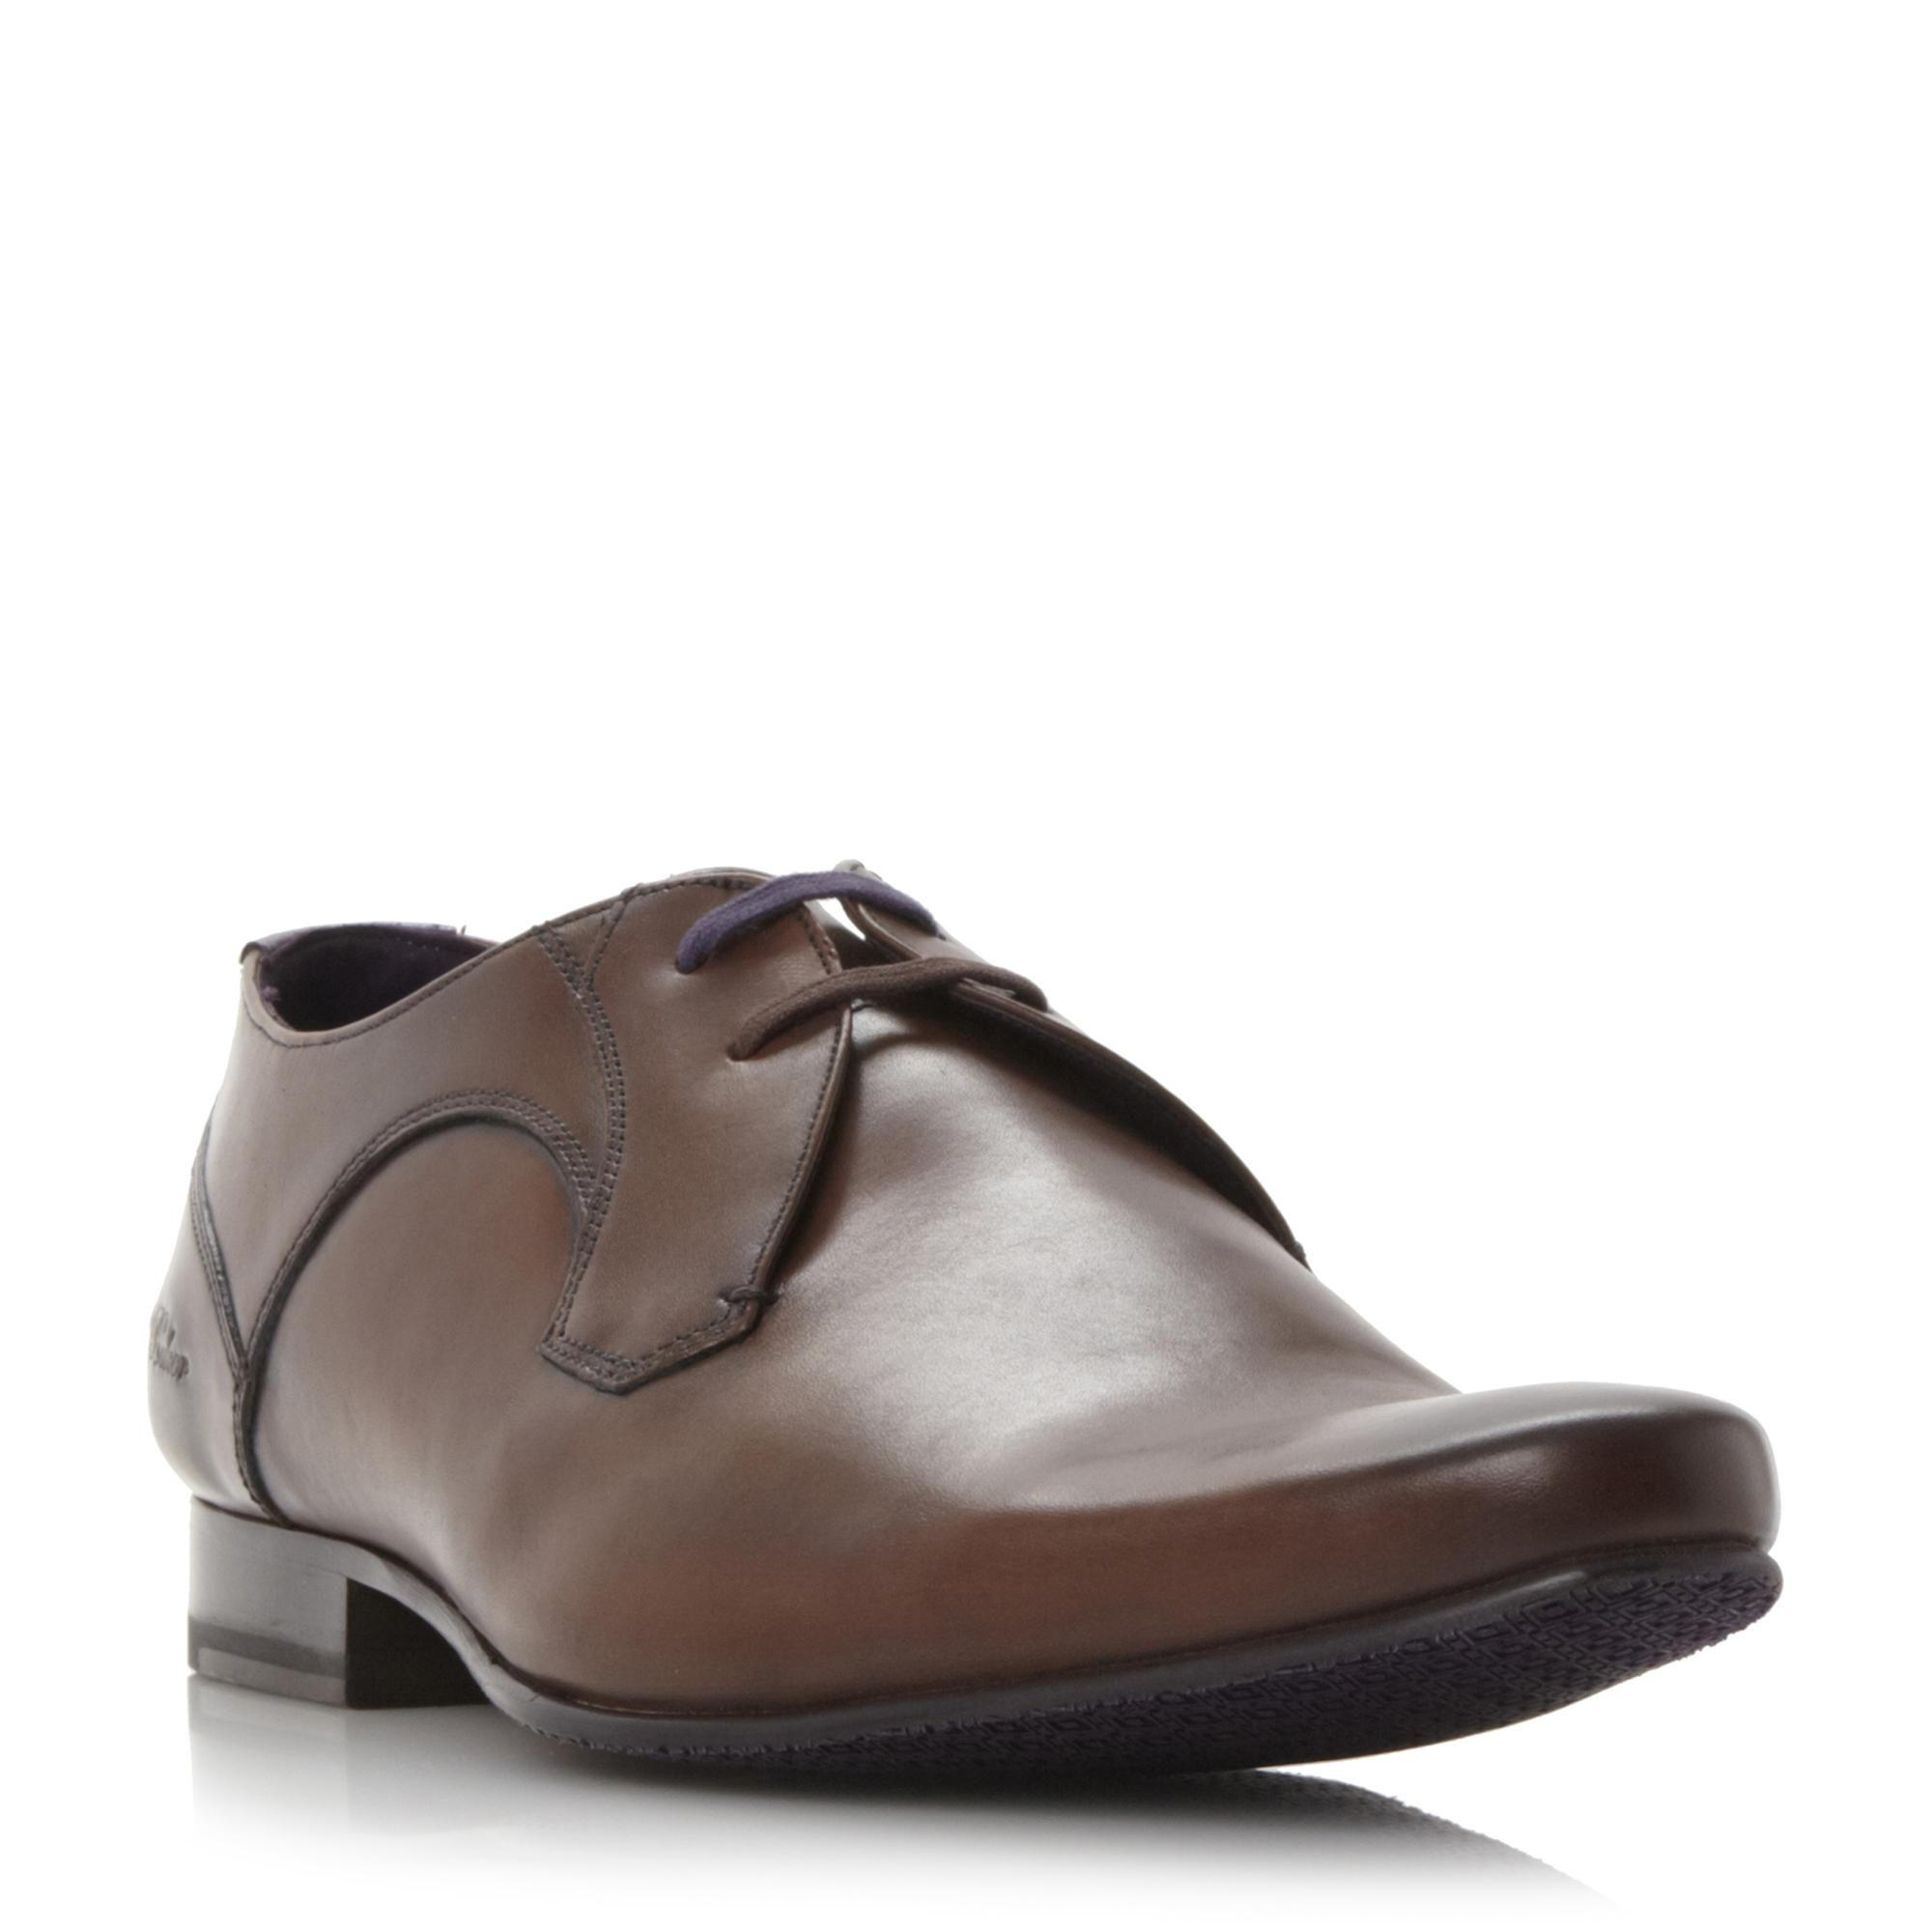 36ce16935fc4 TED BAKER MENS MARTT 2 - Leather Derby Shoe With Constrast Laces - brown